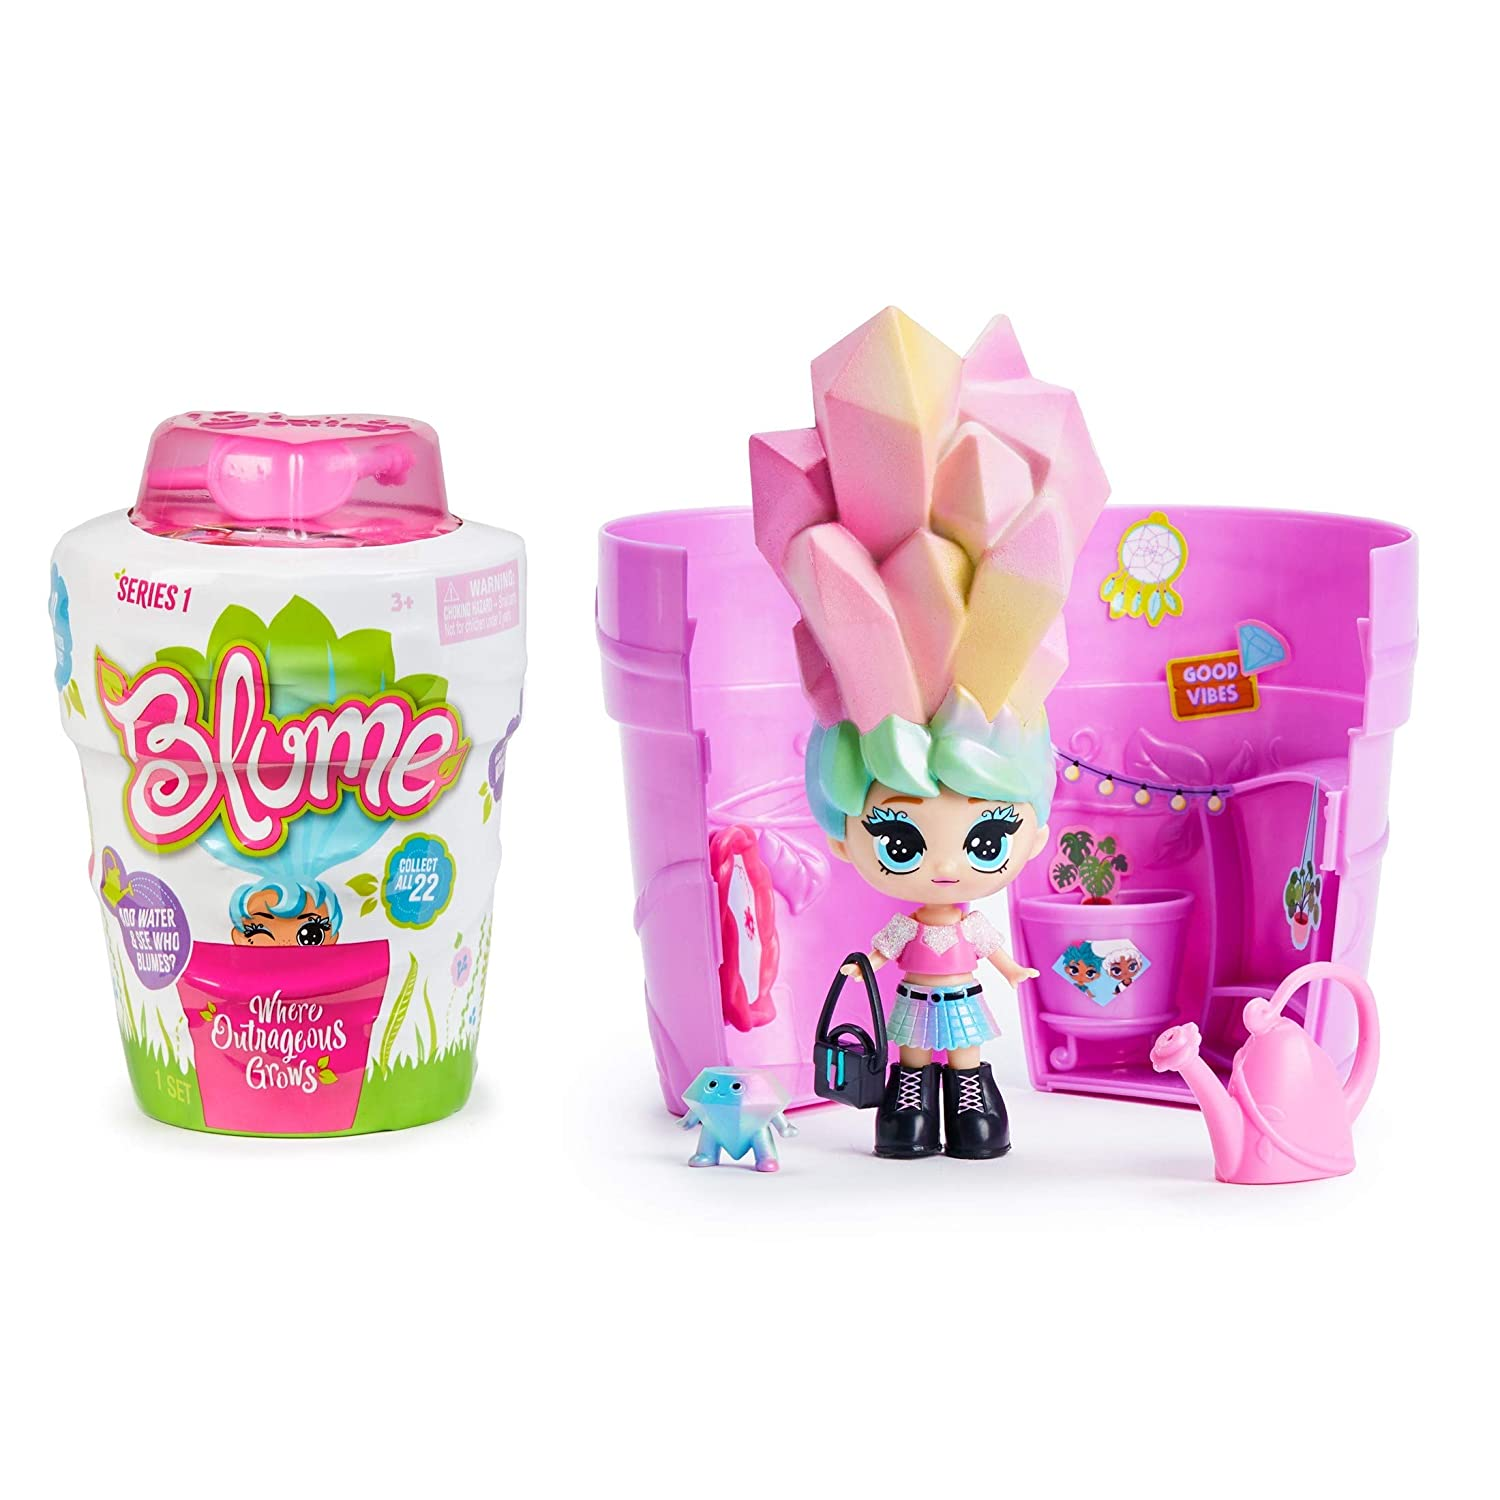 Skyrocket Blume Doll - Add Water & See Who Grows